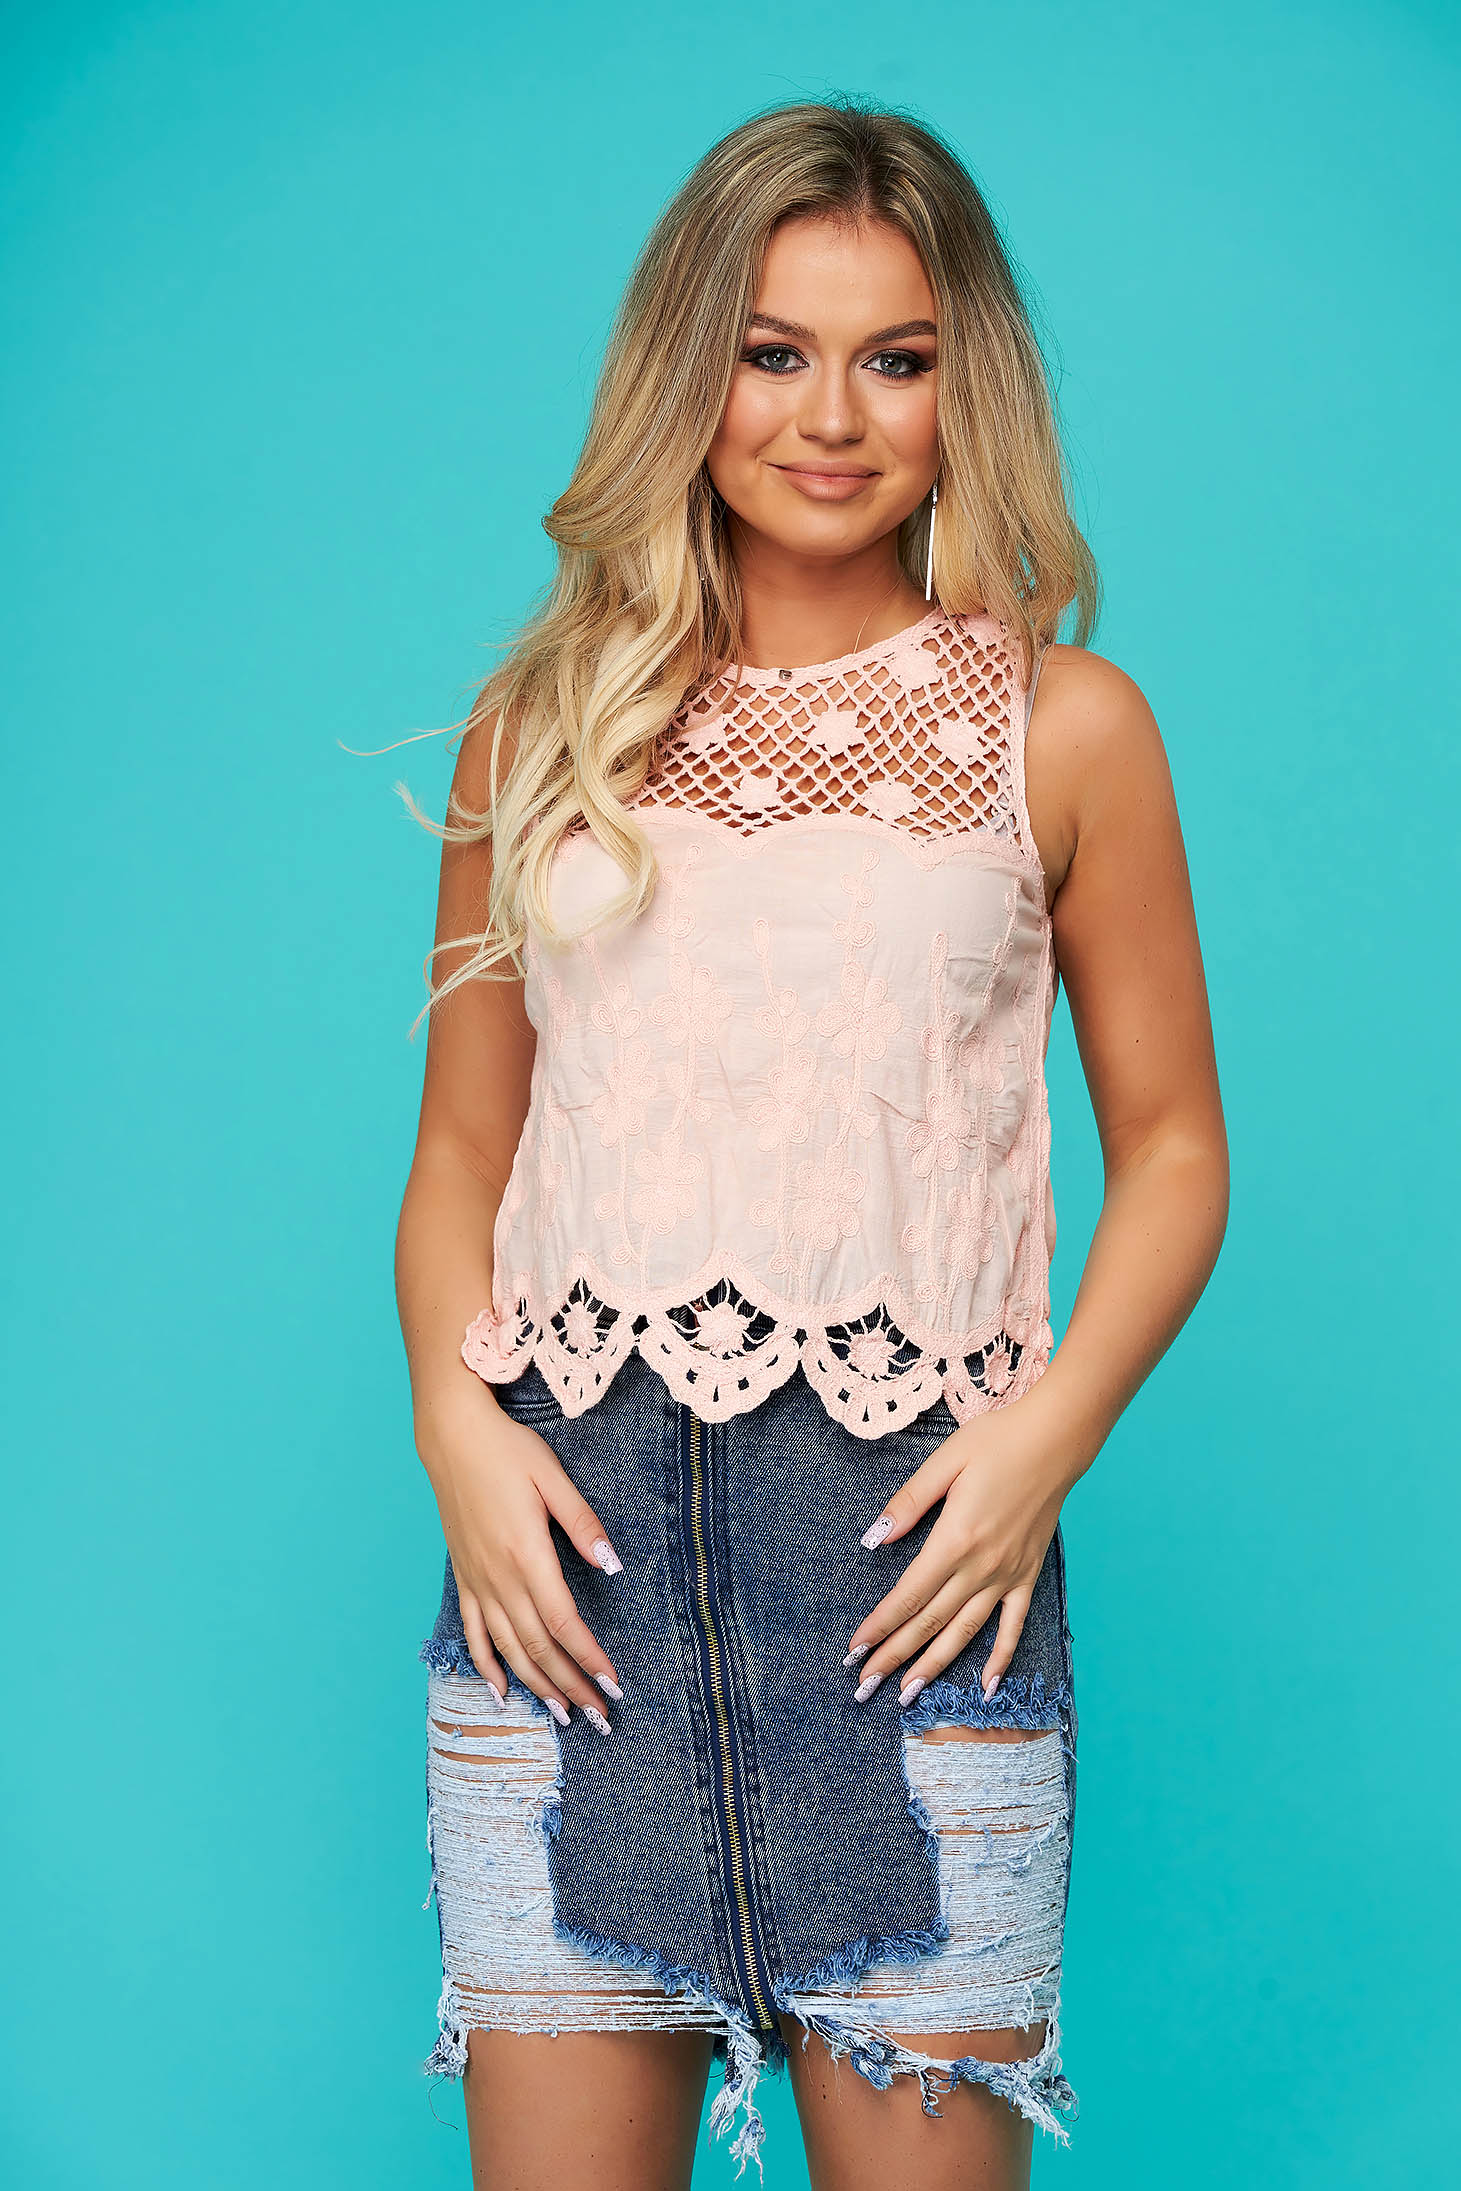 Pink top shirt casual short cut flared nonelastic cotton